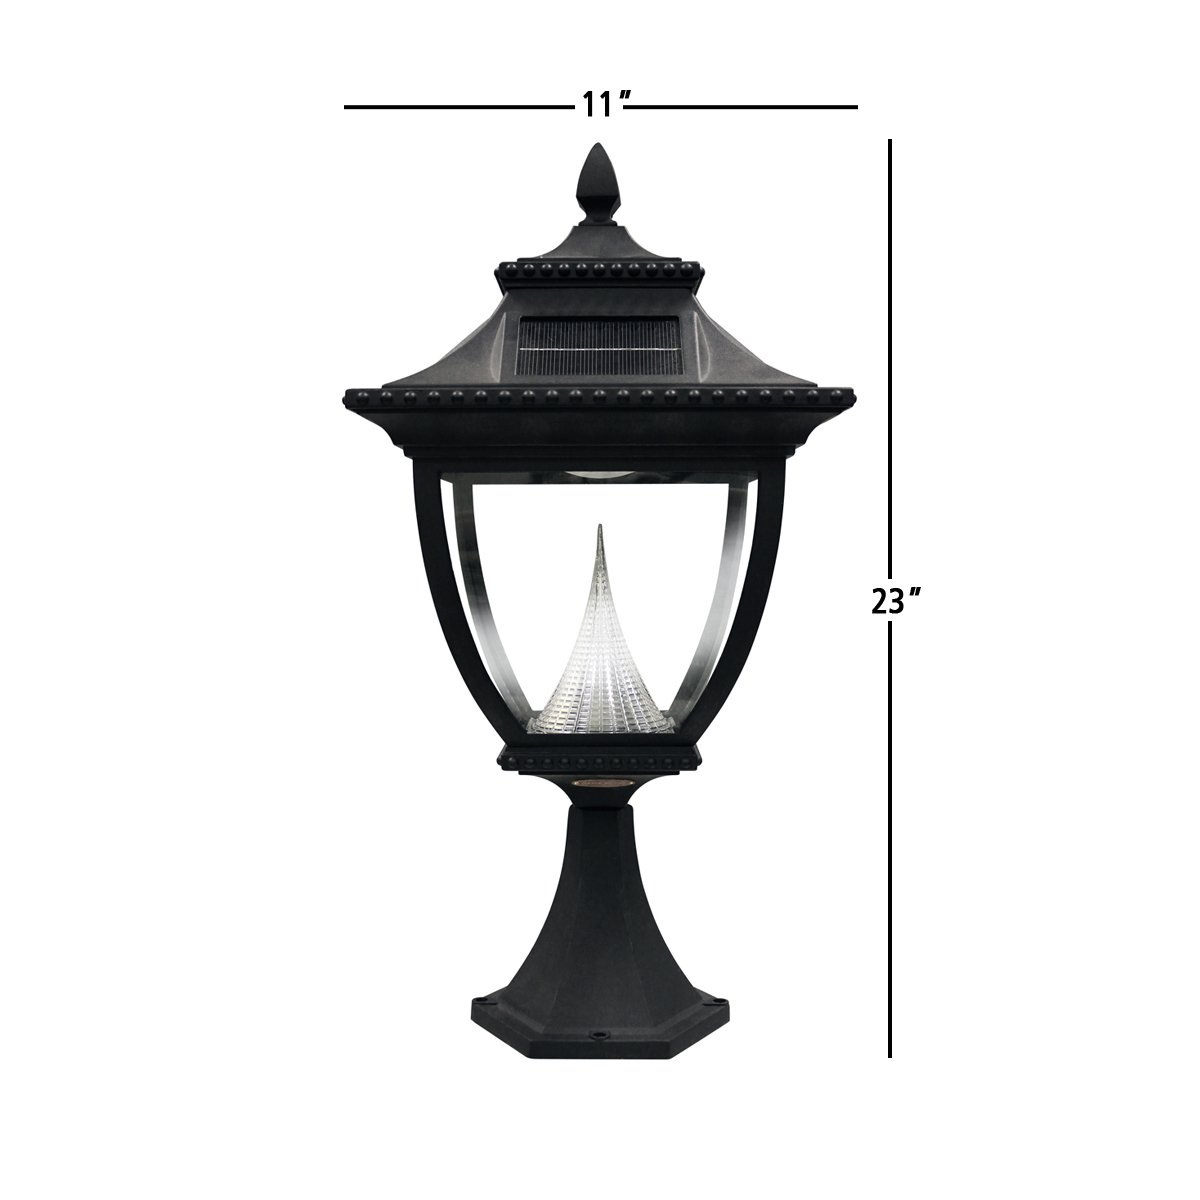 Bright White LED Lamp Black Gamasonic Wall Mount Gama Sonic GS-104W Pagoda Sconce Outdoor Solar Light Fixture